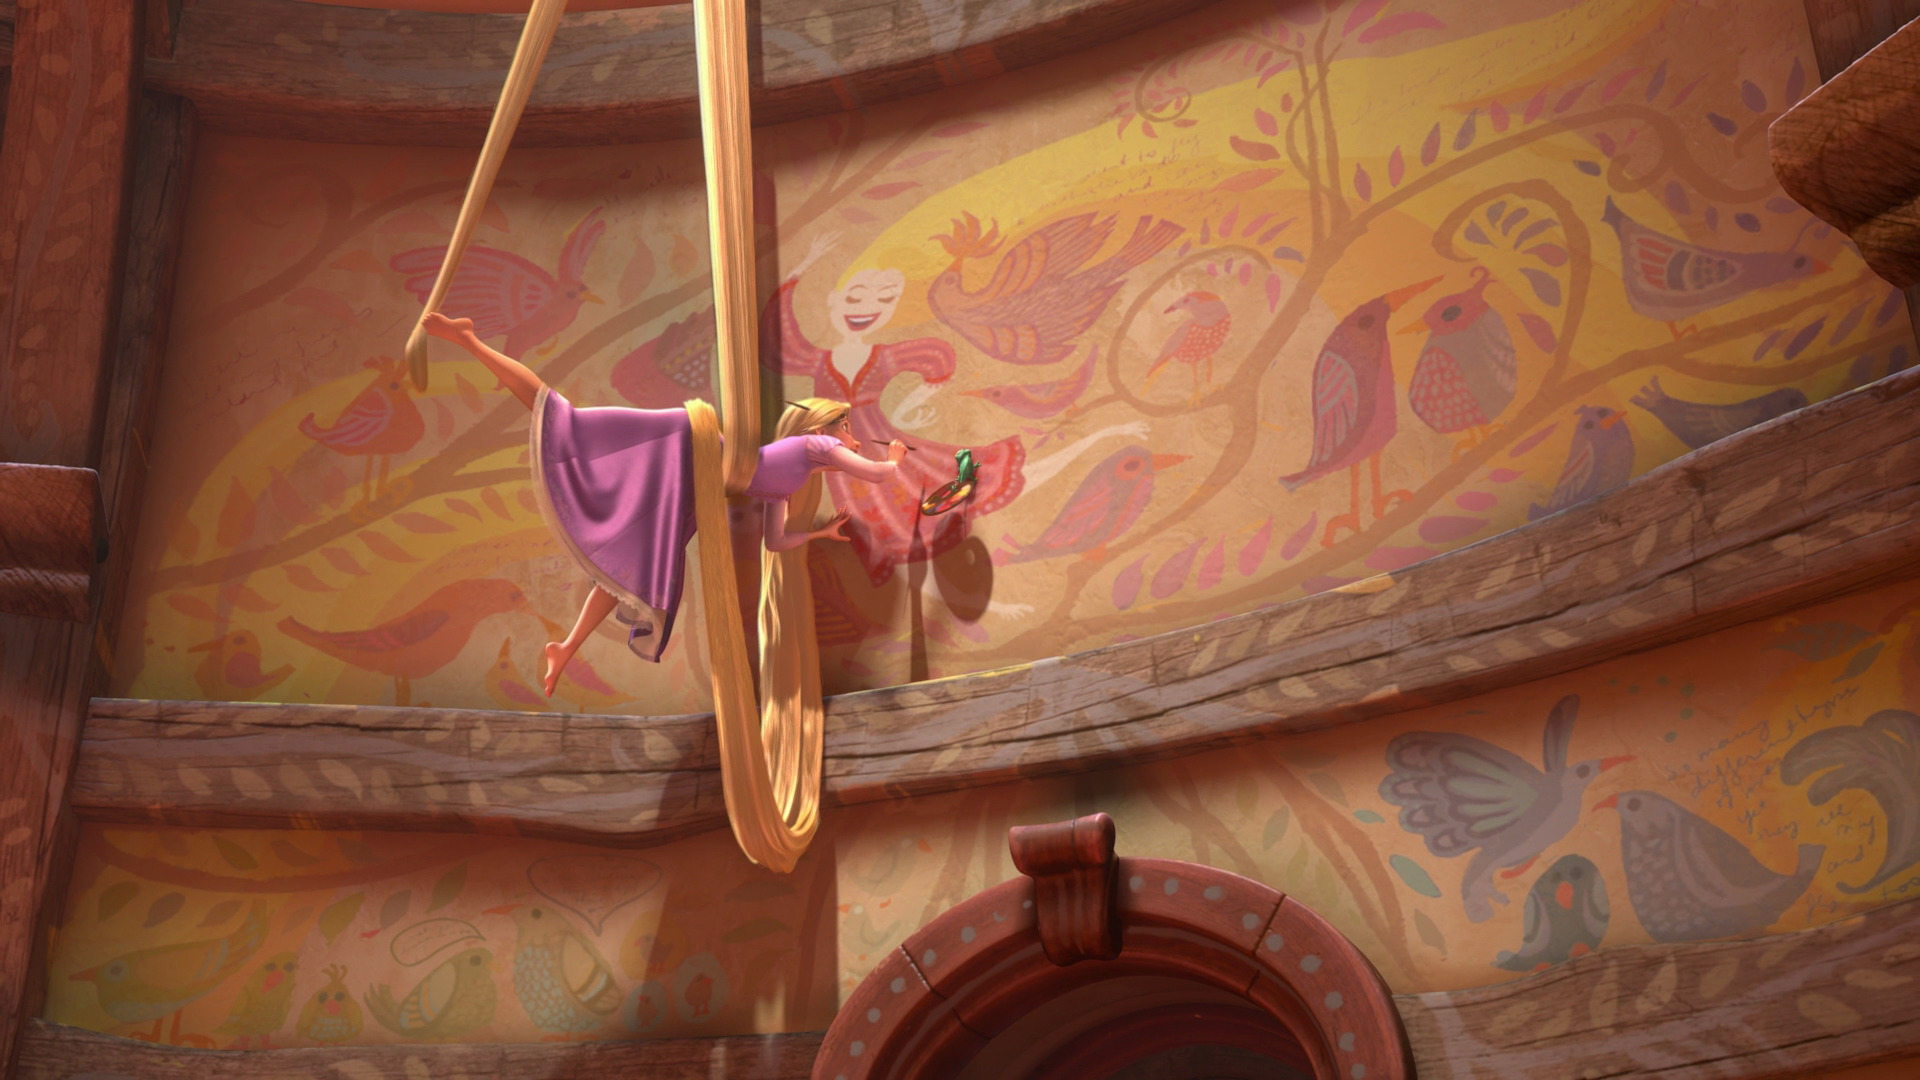 When-Will-My-Life-Begin-princess-rapunzel-from-tangled-34914452-1920-1080.jpg